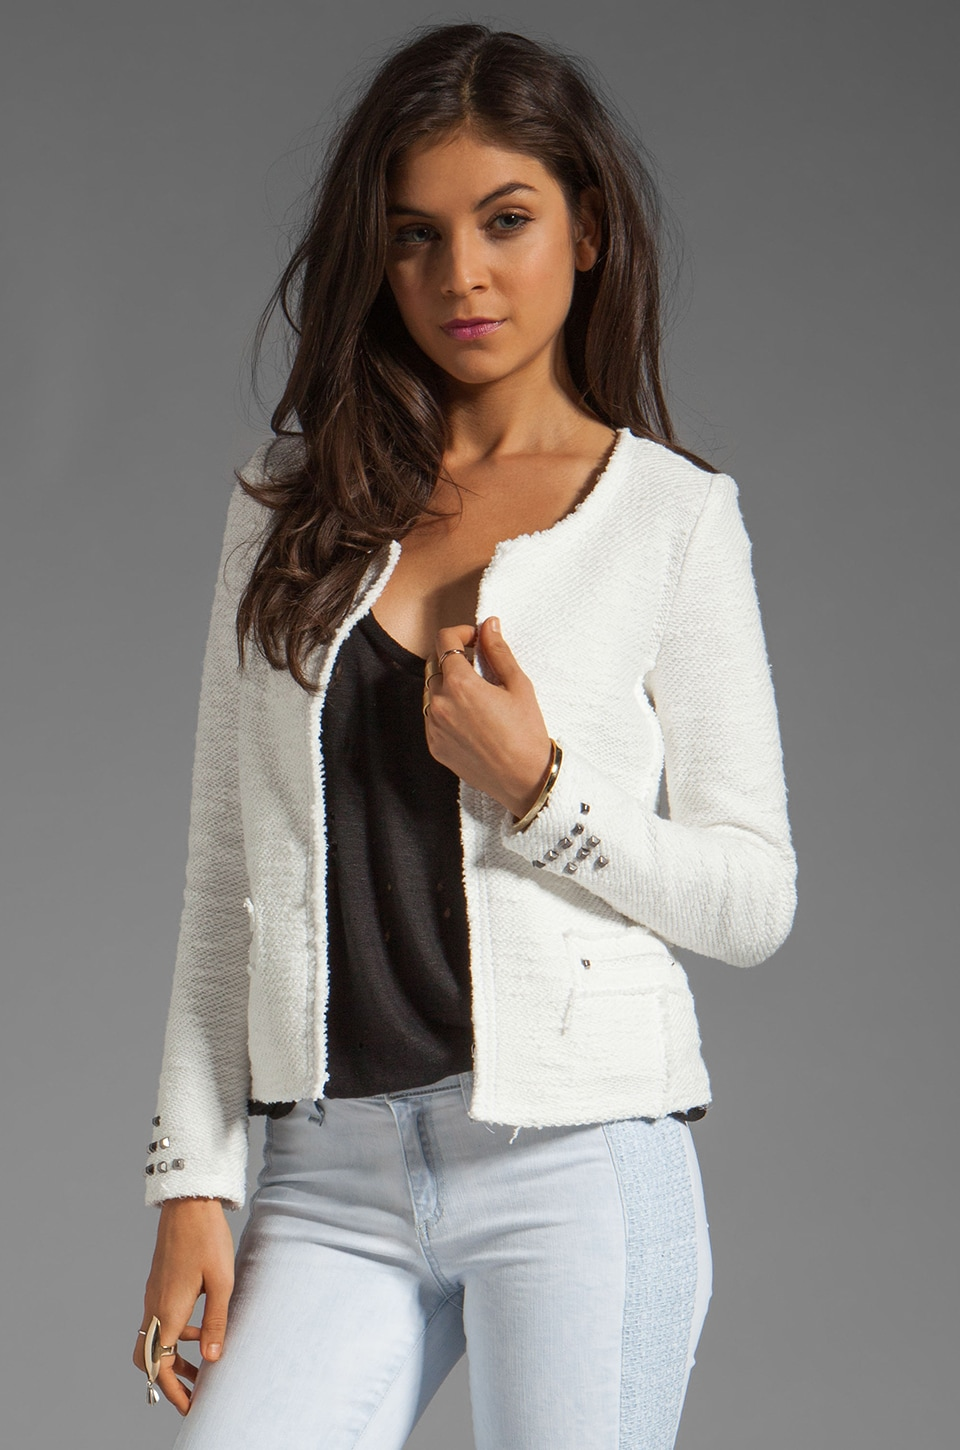 BY ZOE Stern Jacket in White